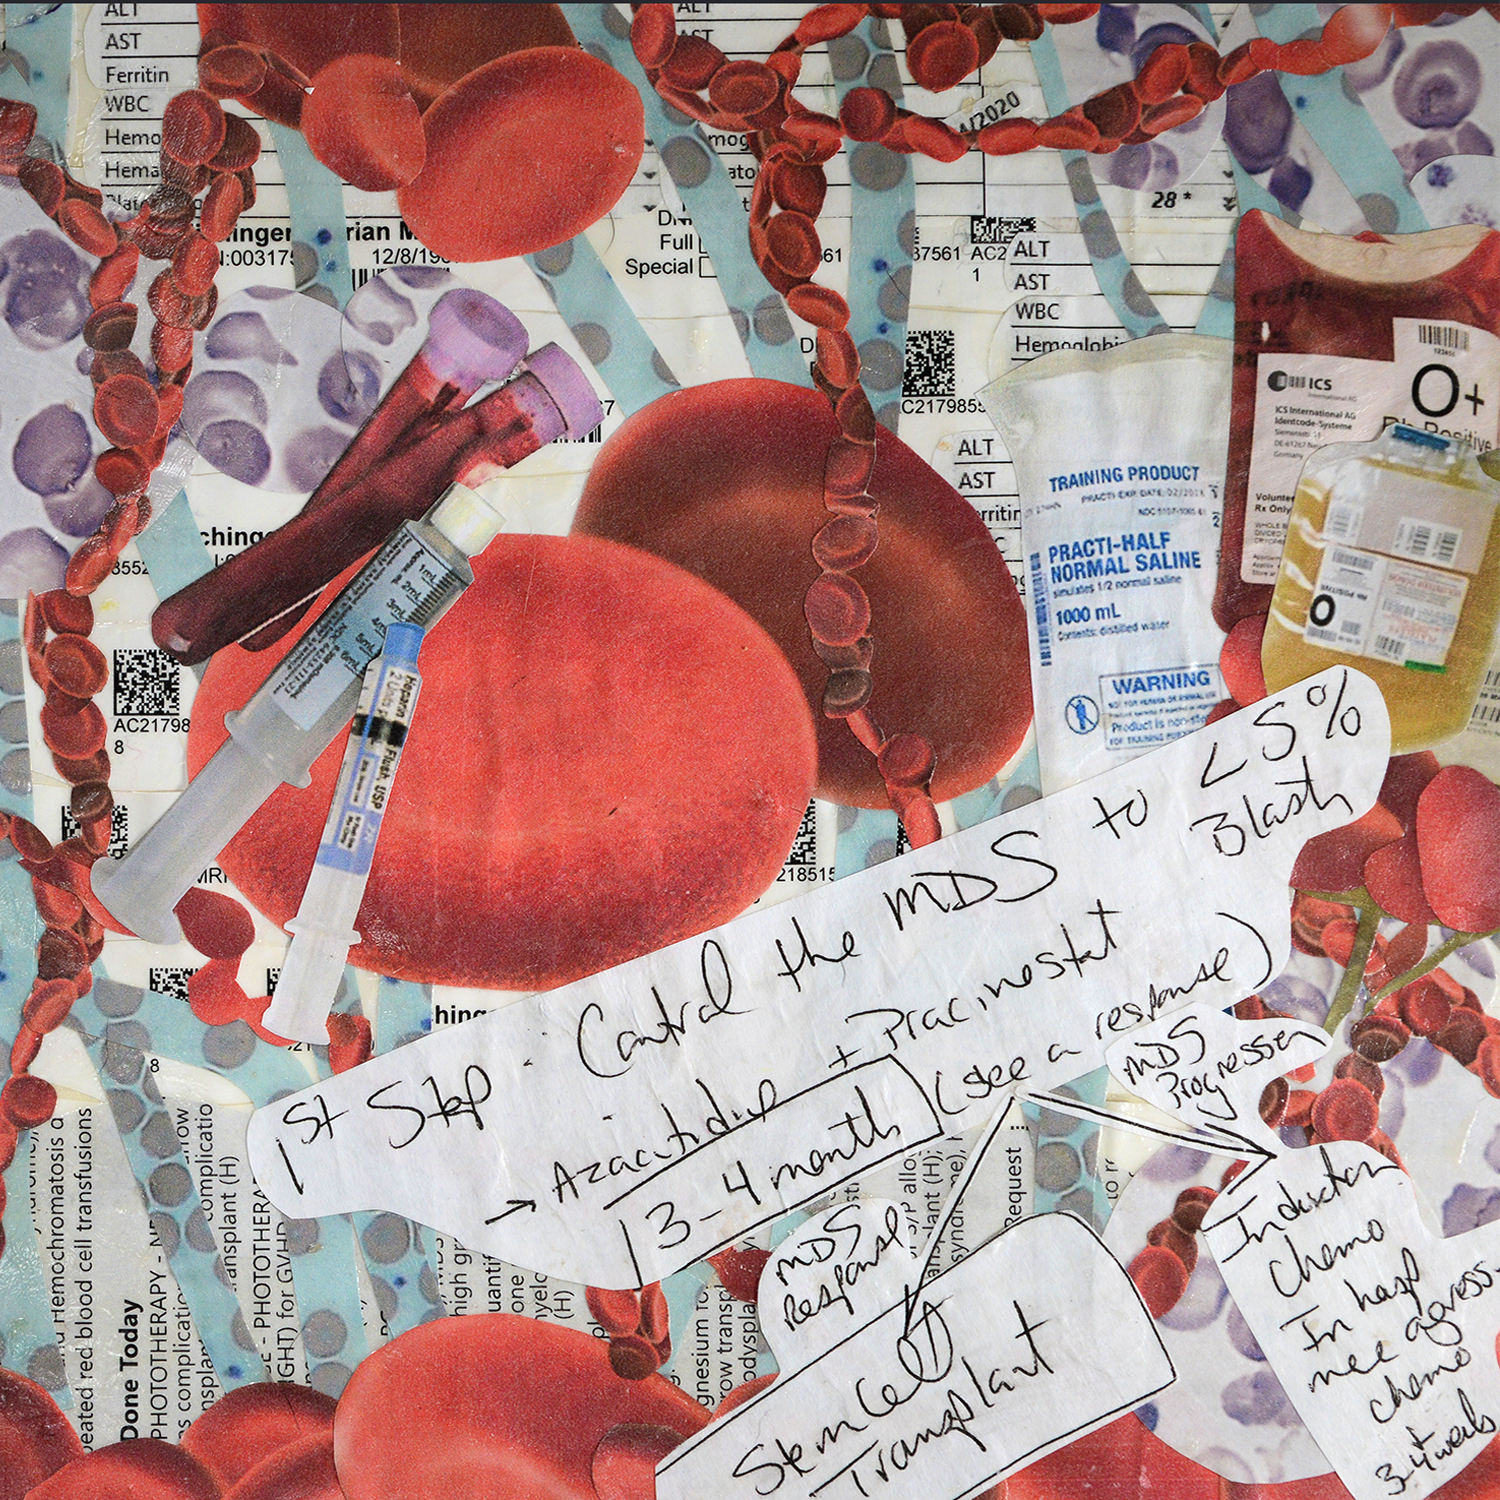 MARIAN EICHINGER, ACCEPTING REALITY AND OVERWHELMED BY THE COMPLEXITY: This is a hand-cut collage of images that dominated my life after my diagnosis of MDS in May 2018. The collage turned into a visual of what my general daily or weekly routine looked like: labs, blood draws, fluids, doctor notes, transfusions, infusions, white blood cells, blasts, red blood cells, and platelets. The pictures overlap and interrupt each other, becoming the tangle of complexity that is MDS.